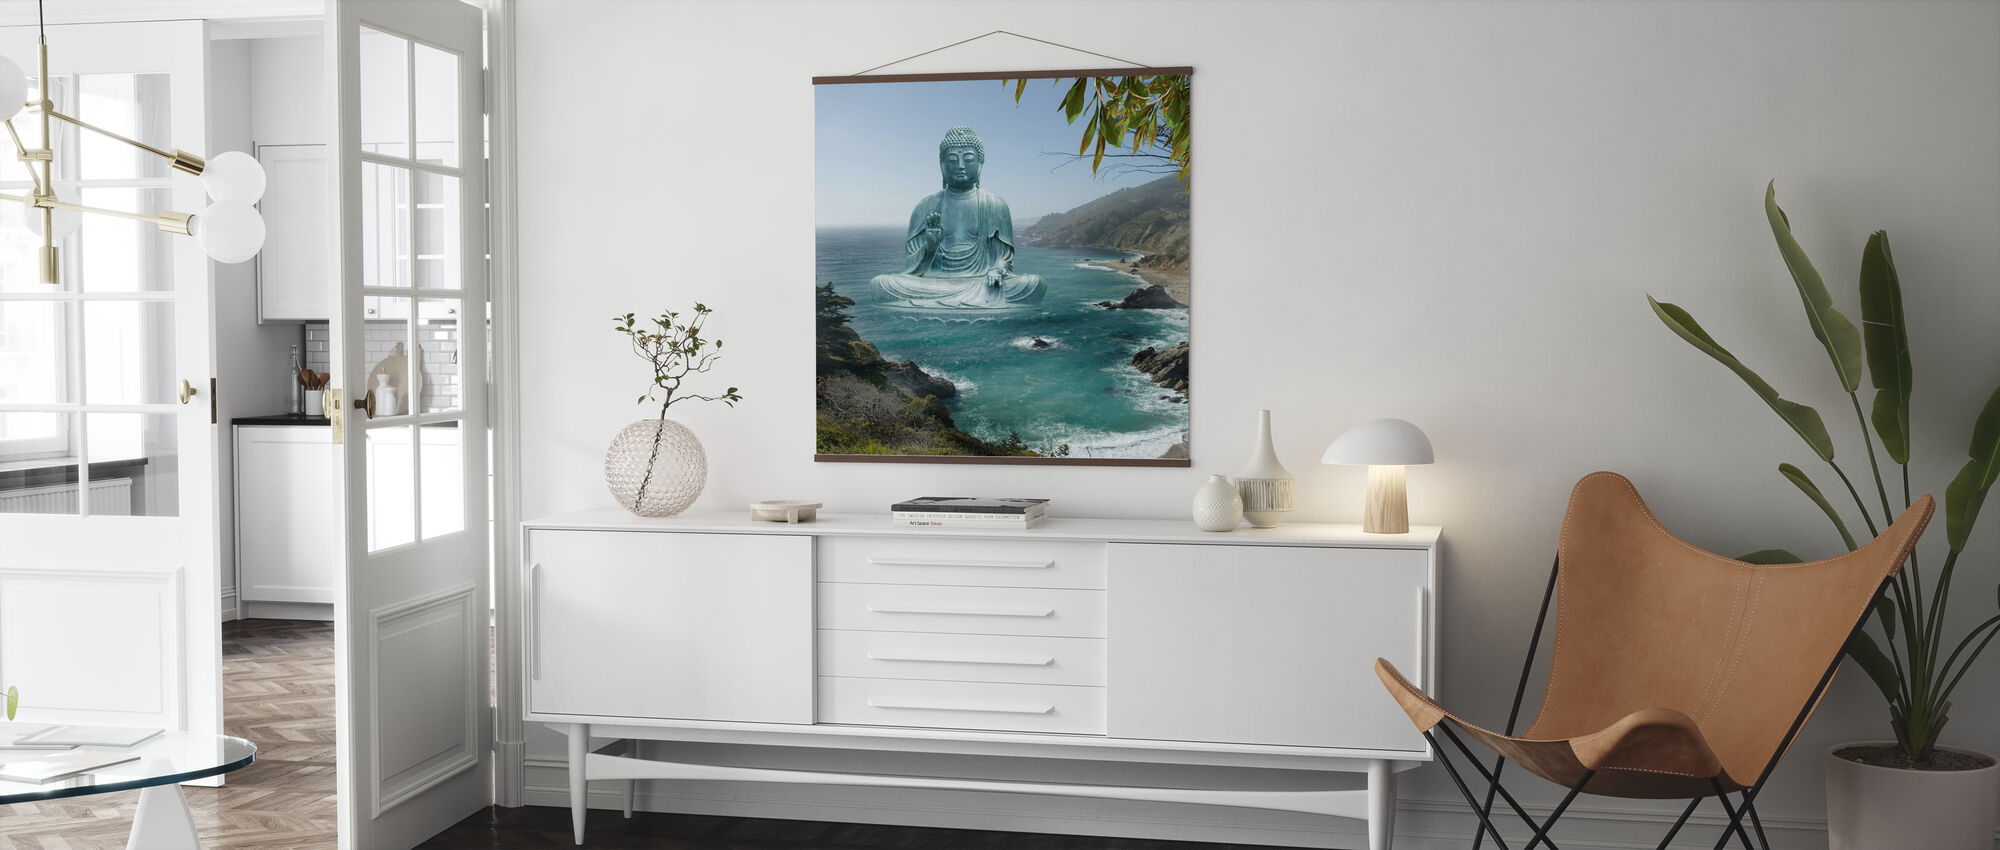 Big Sur Tea Garden Buddha - Poster - Living Room